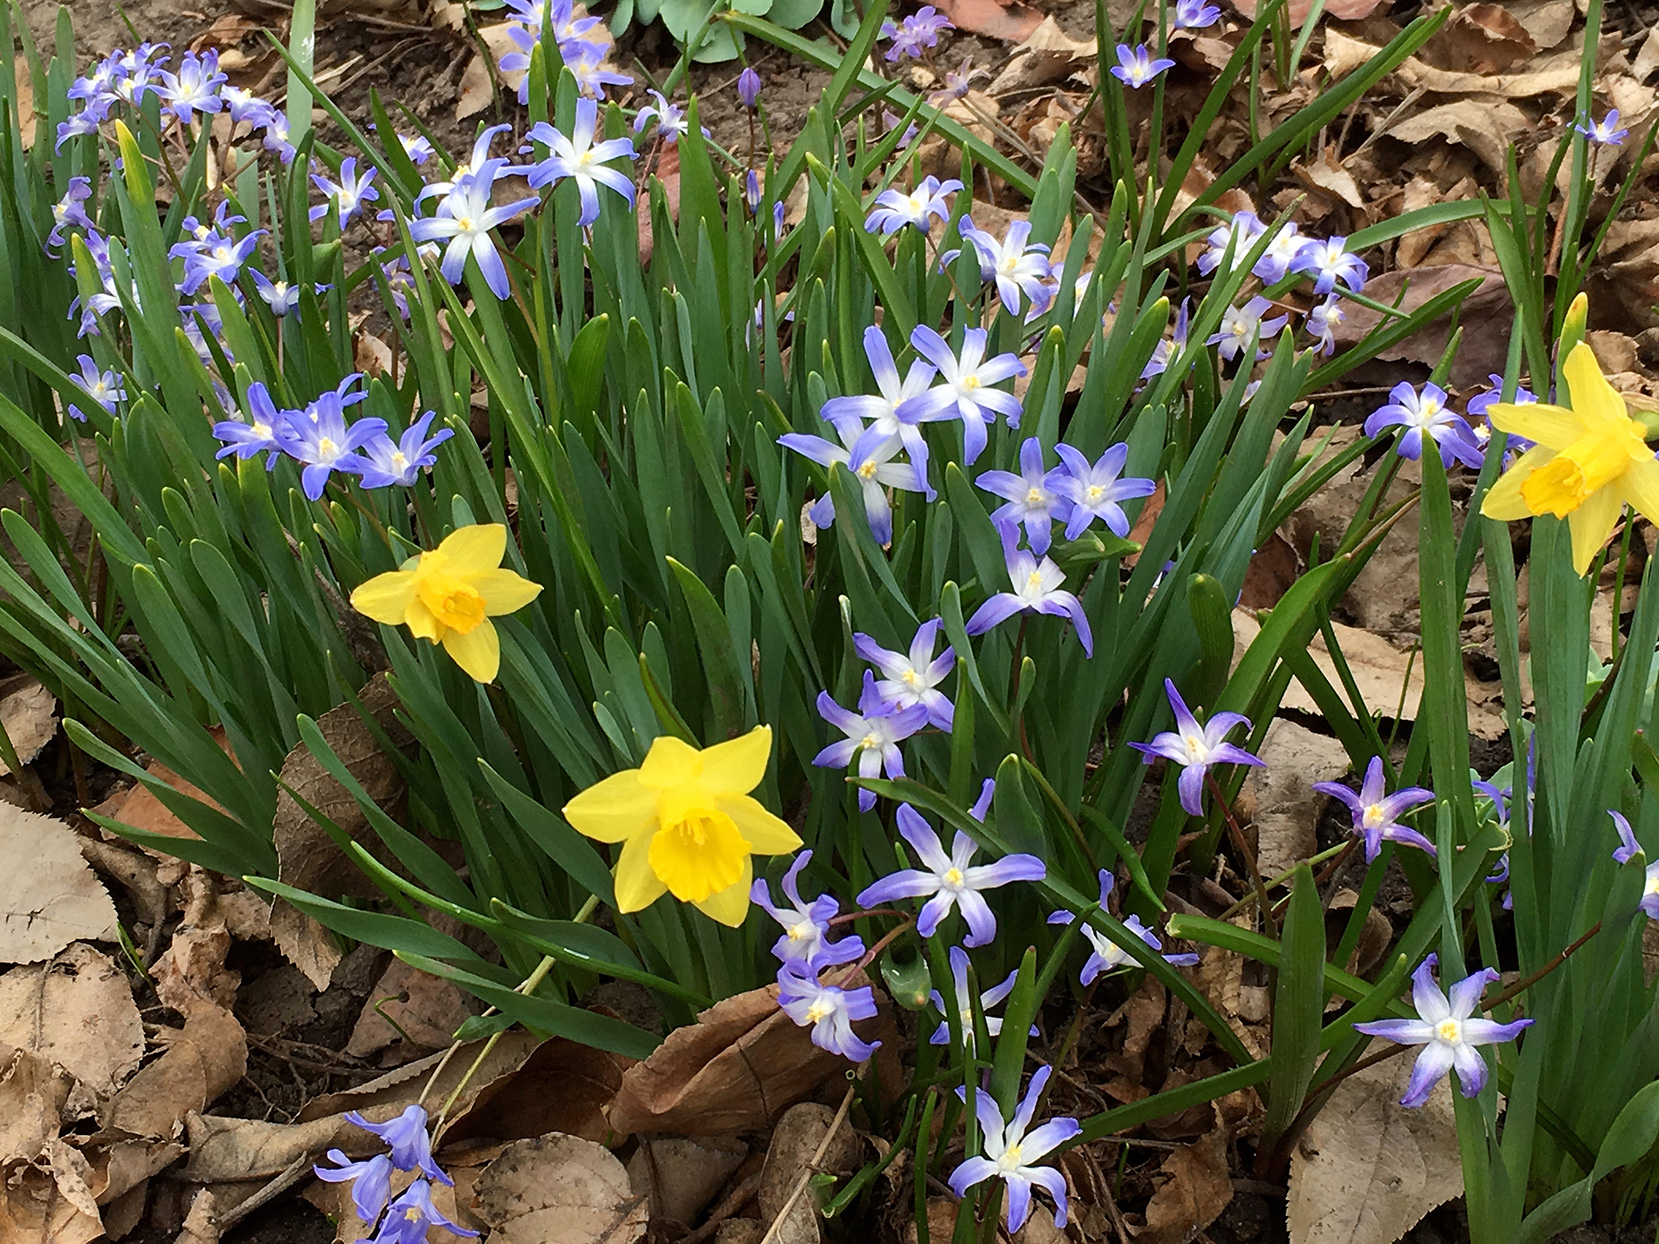 Dwarf daffodils and glory of the snow flowers growing together